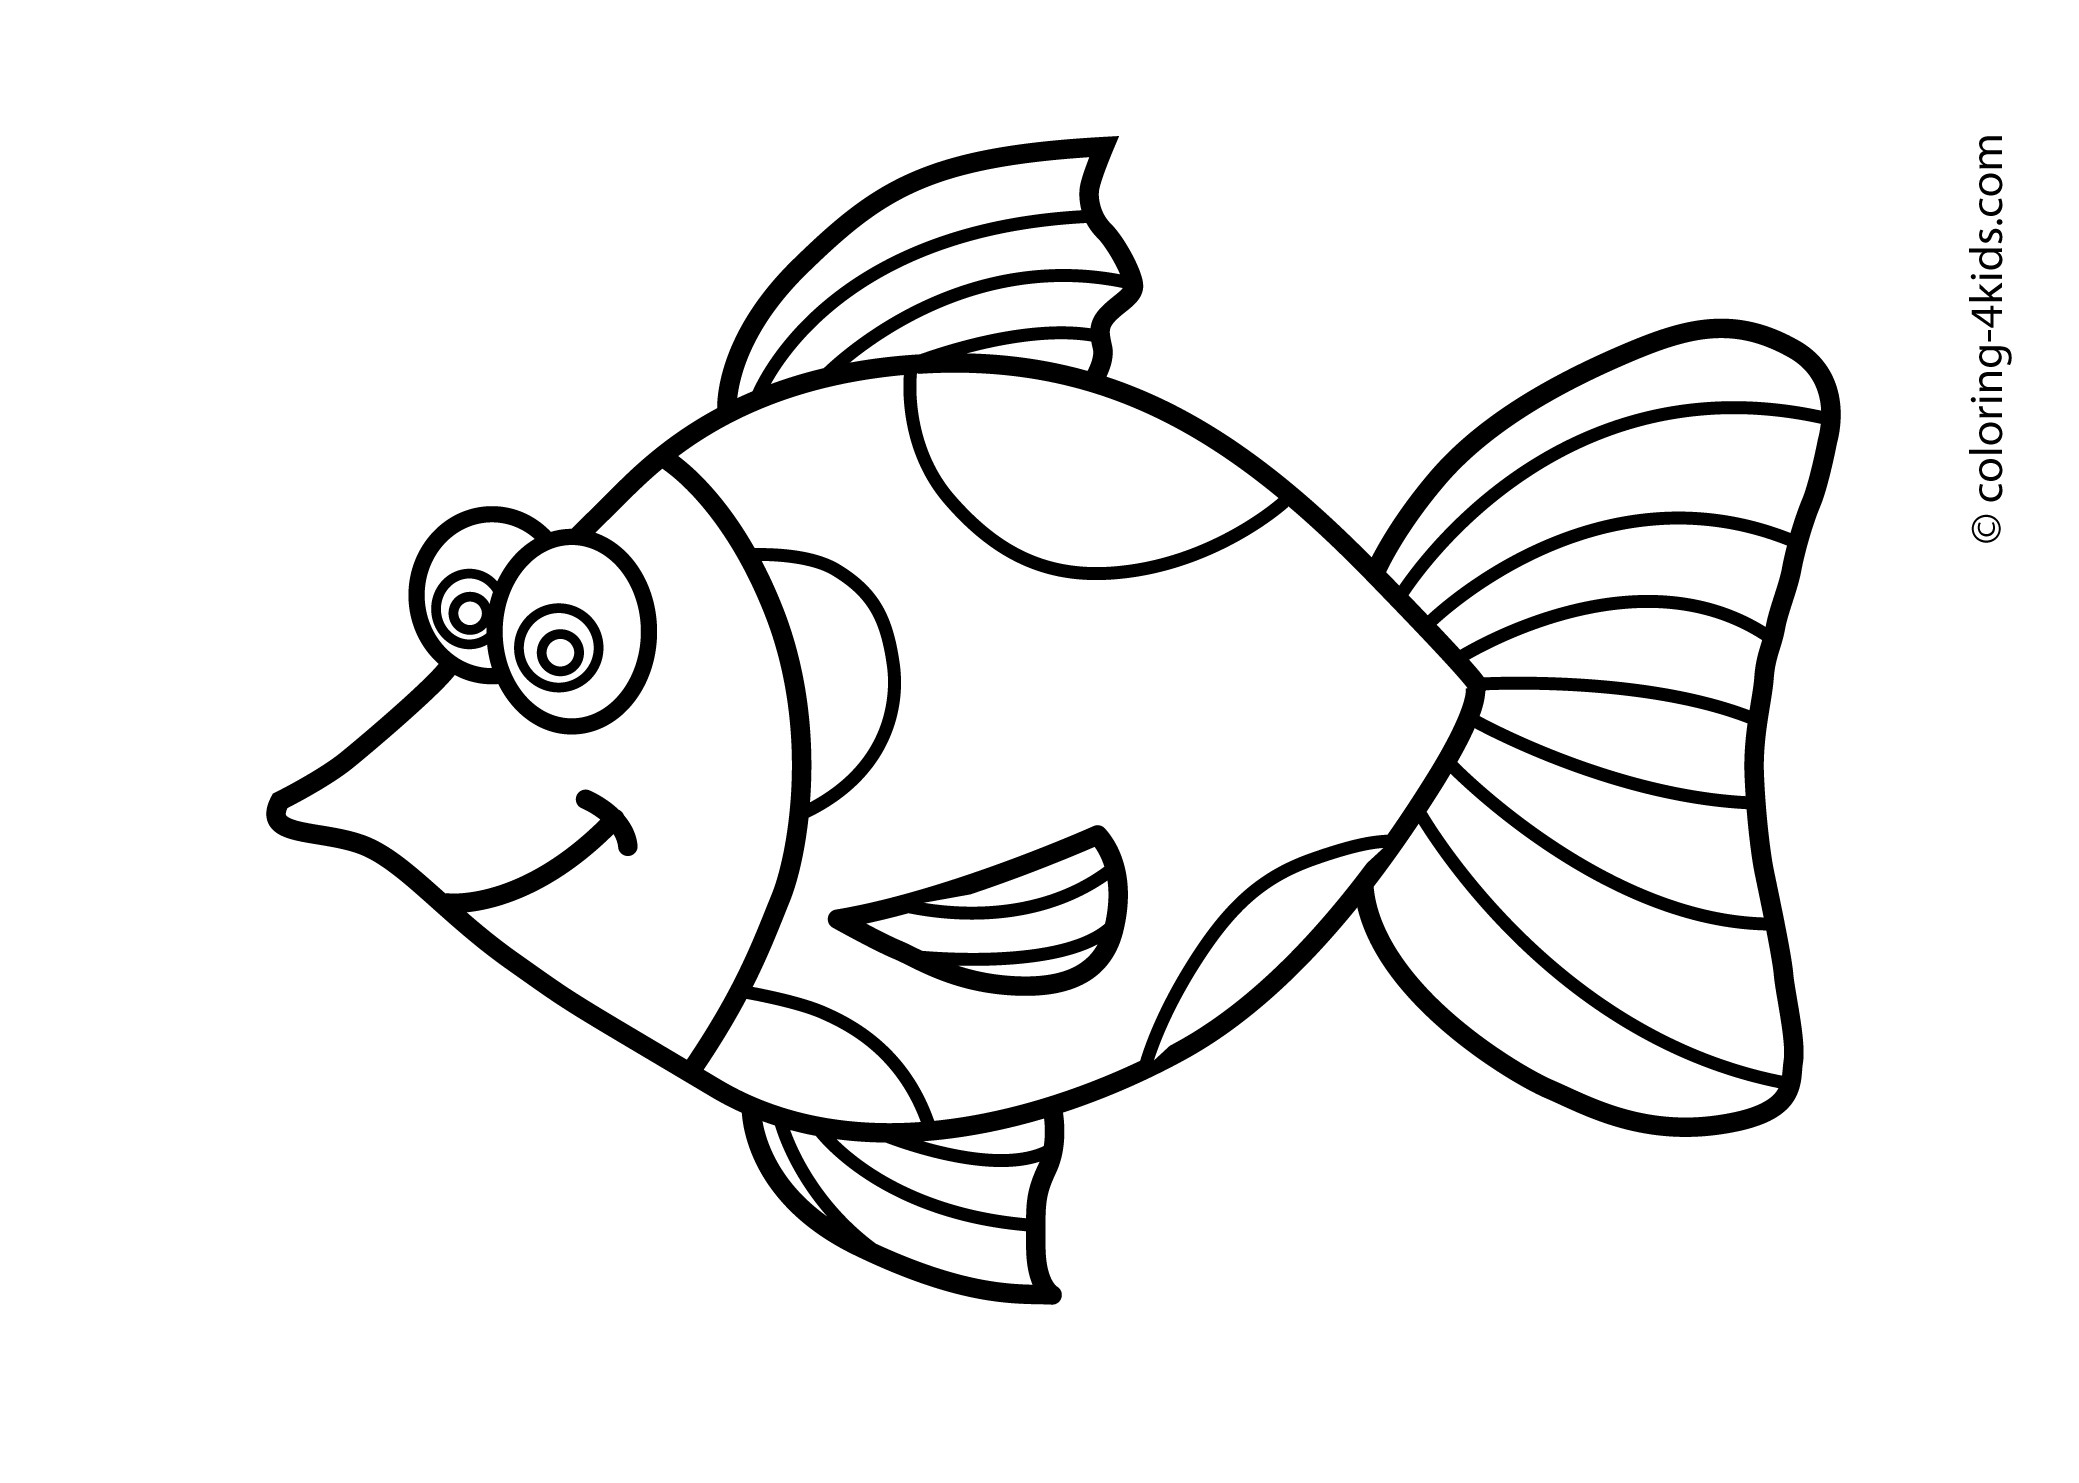 2079x1483 New Easy Coloring Pages Of Fish